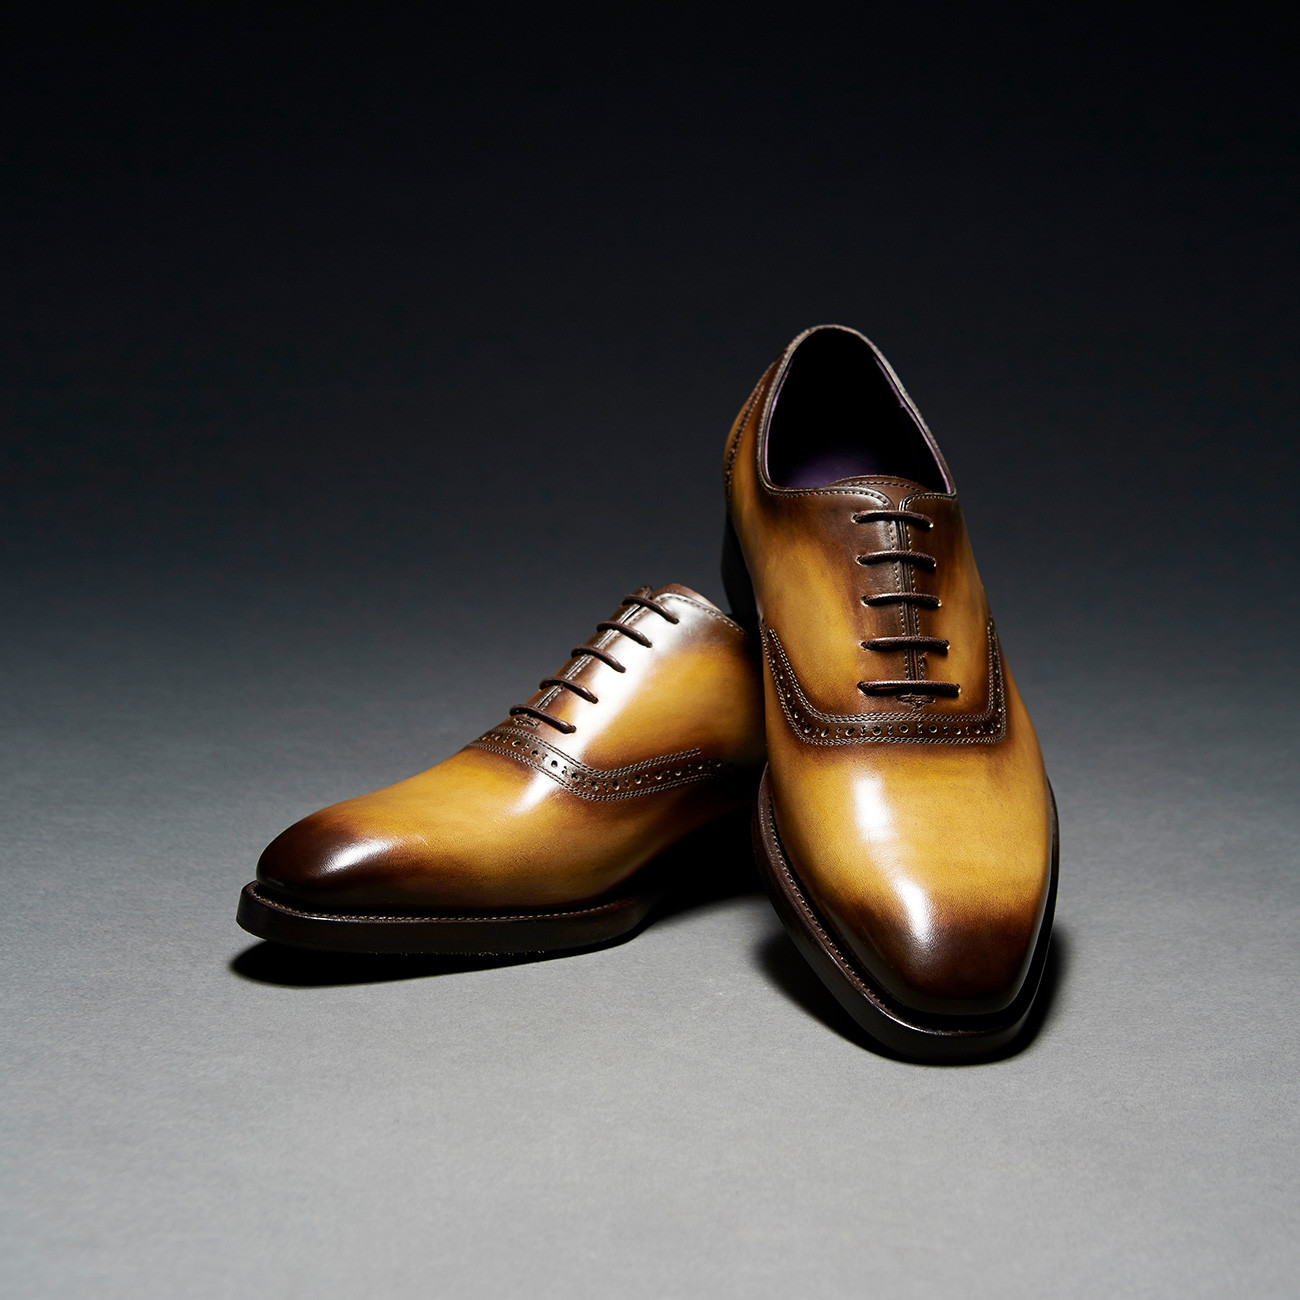 [Custommania X The shuri] PATINA PLAIN TOE OXFORD OFR No.490